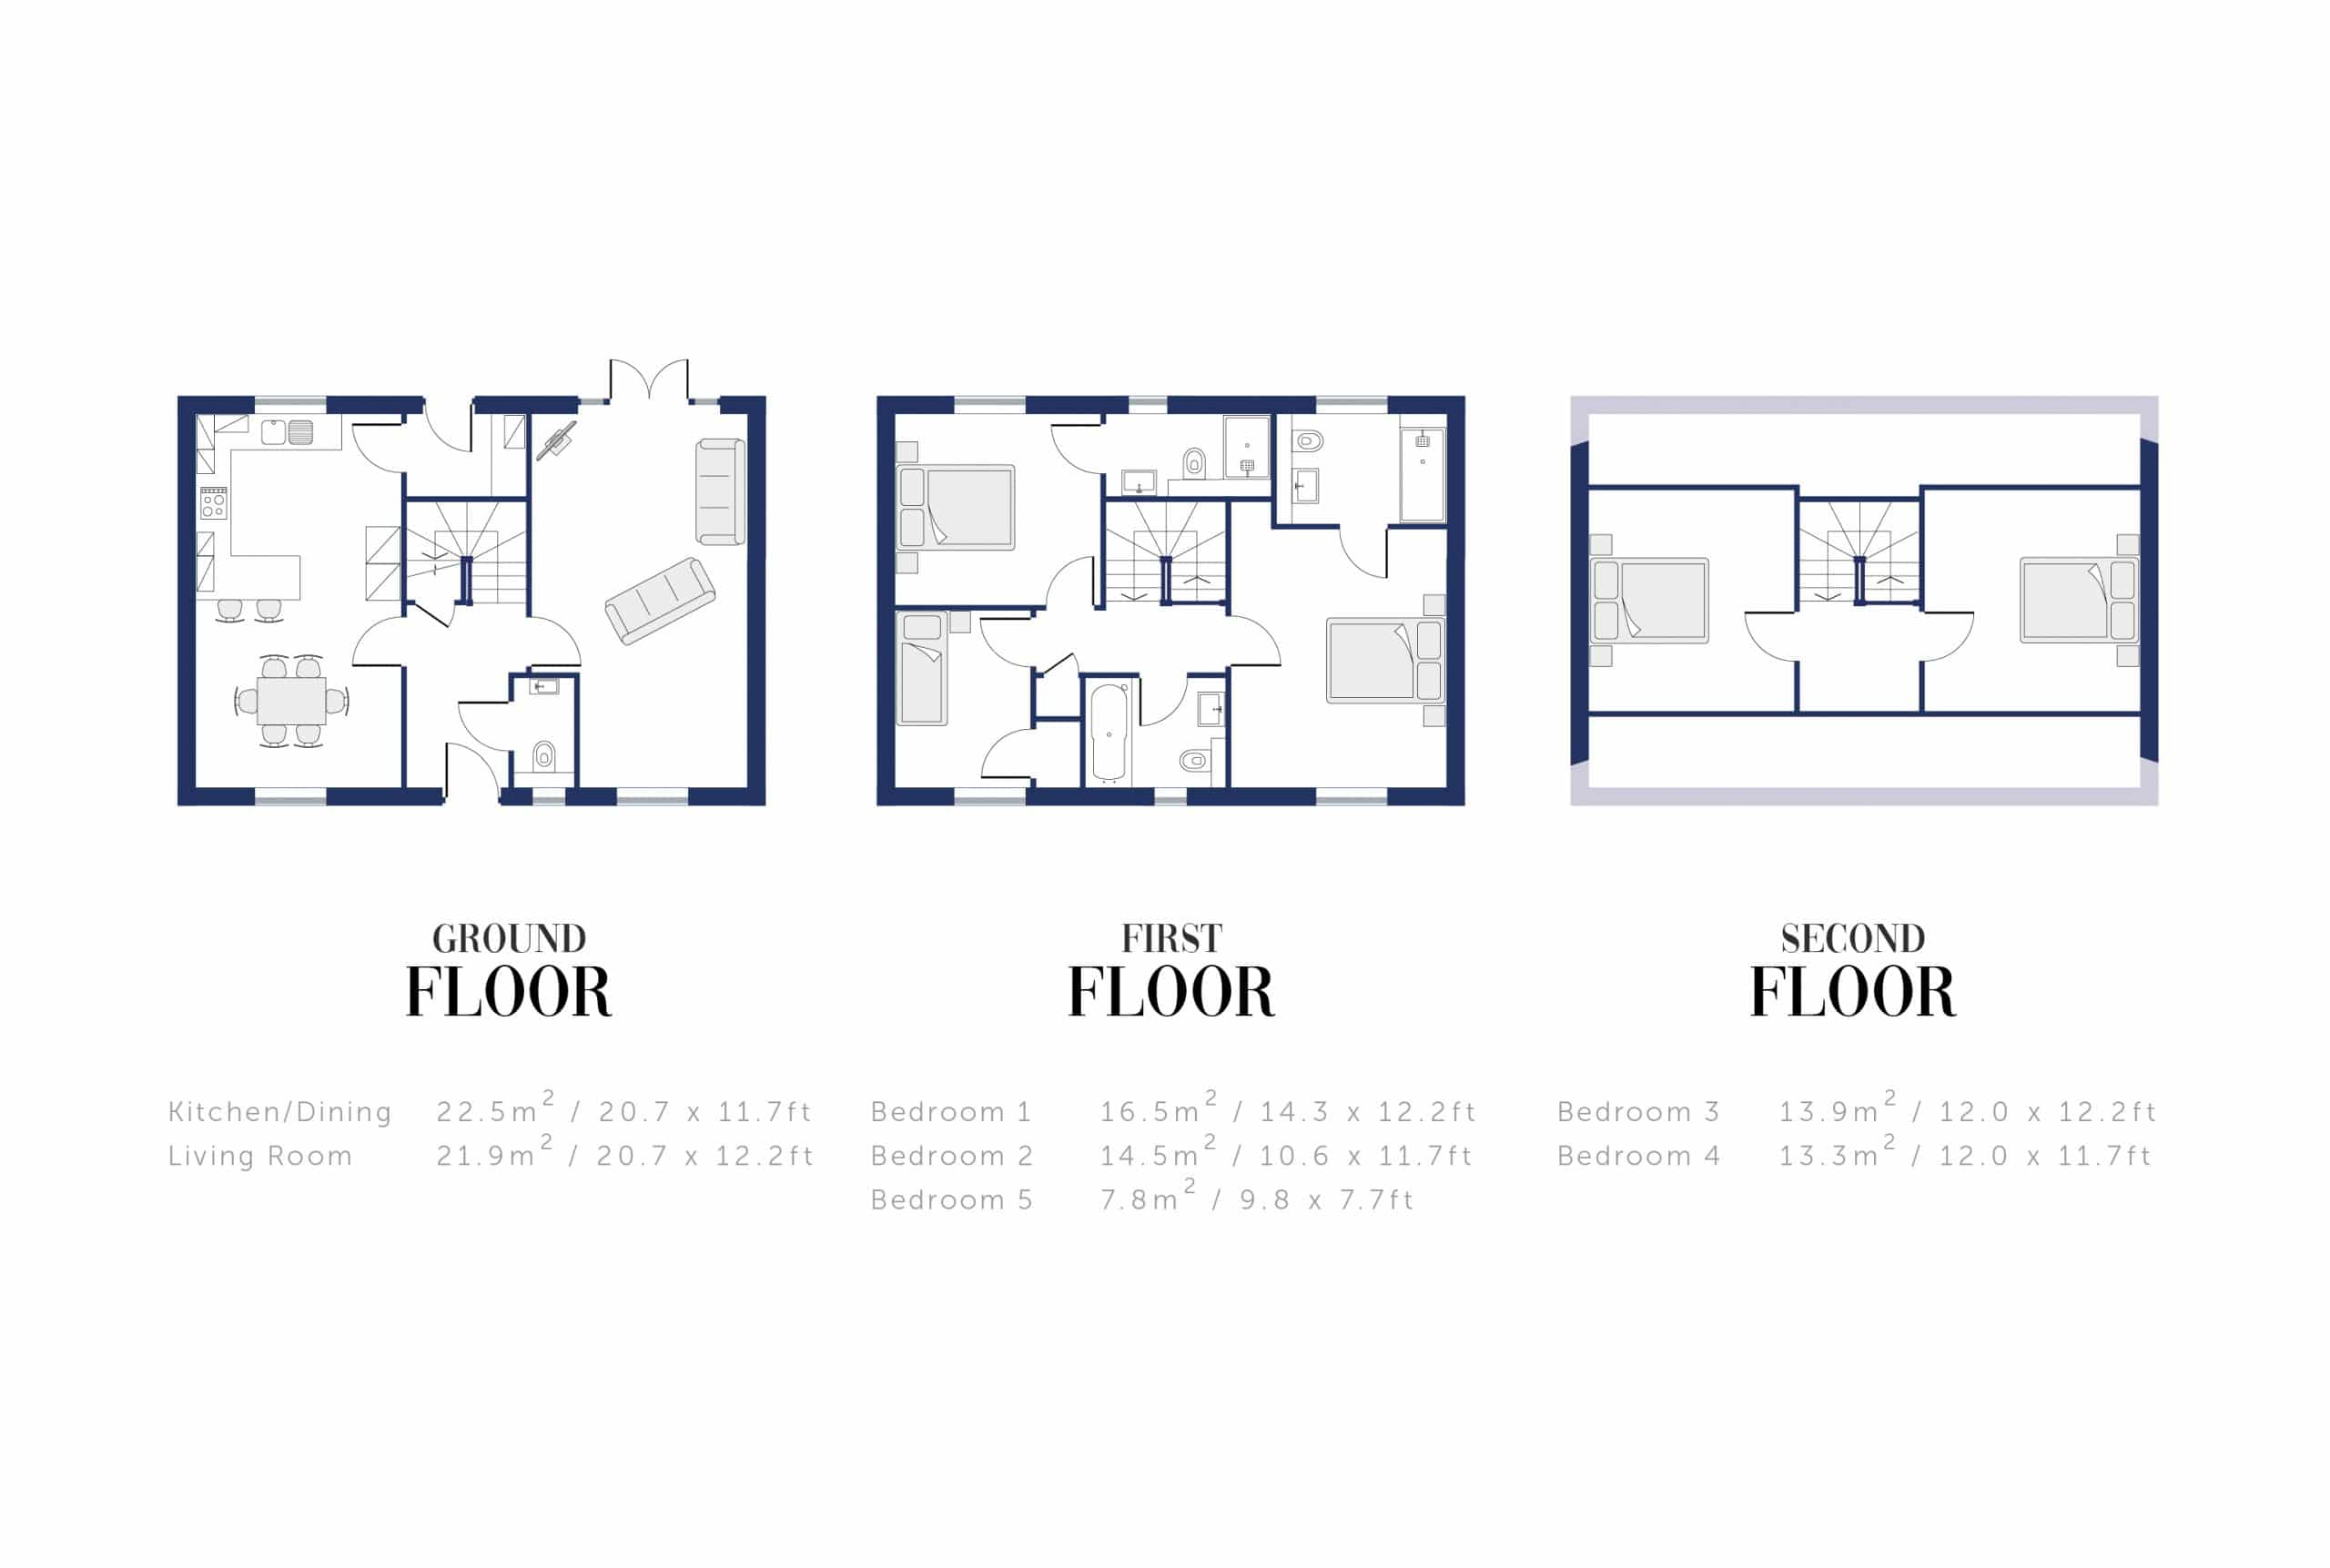 Sunningdale Millers Floor Plan and Sizing for WEB11